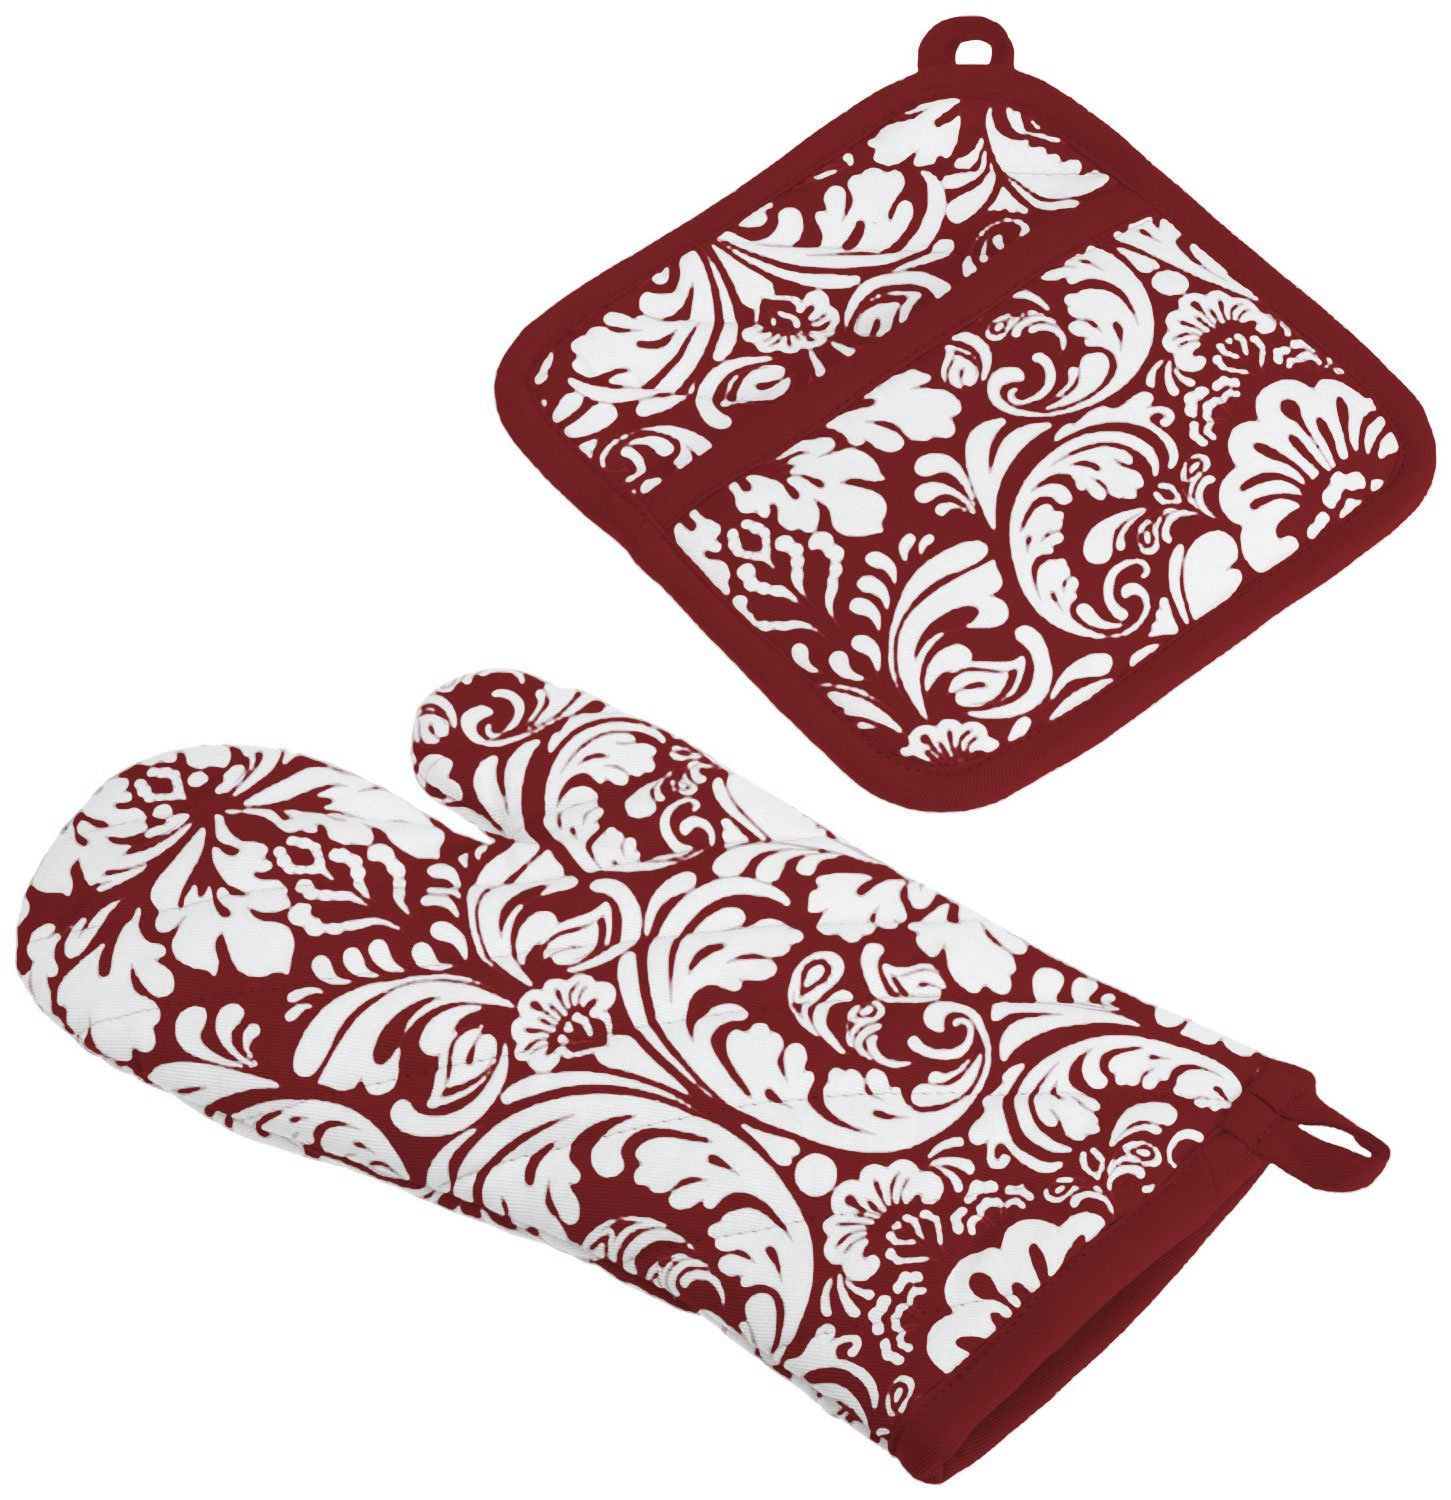 "DII Cotton Damask Oven Mitt 12 x 6.5"" and Pot Holder 8.5 x 8"" Kitchen Gift Set, Machine Washable and Heat Resistant for Cooking and Baking-Wine"